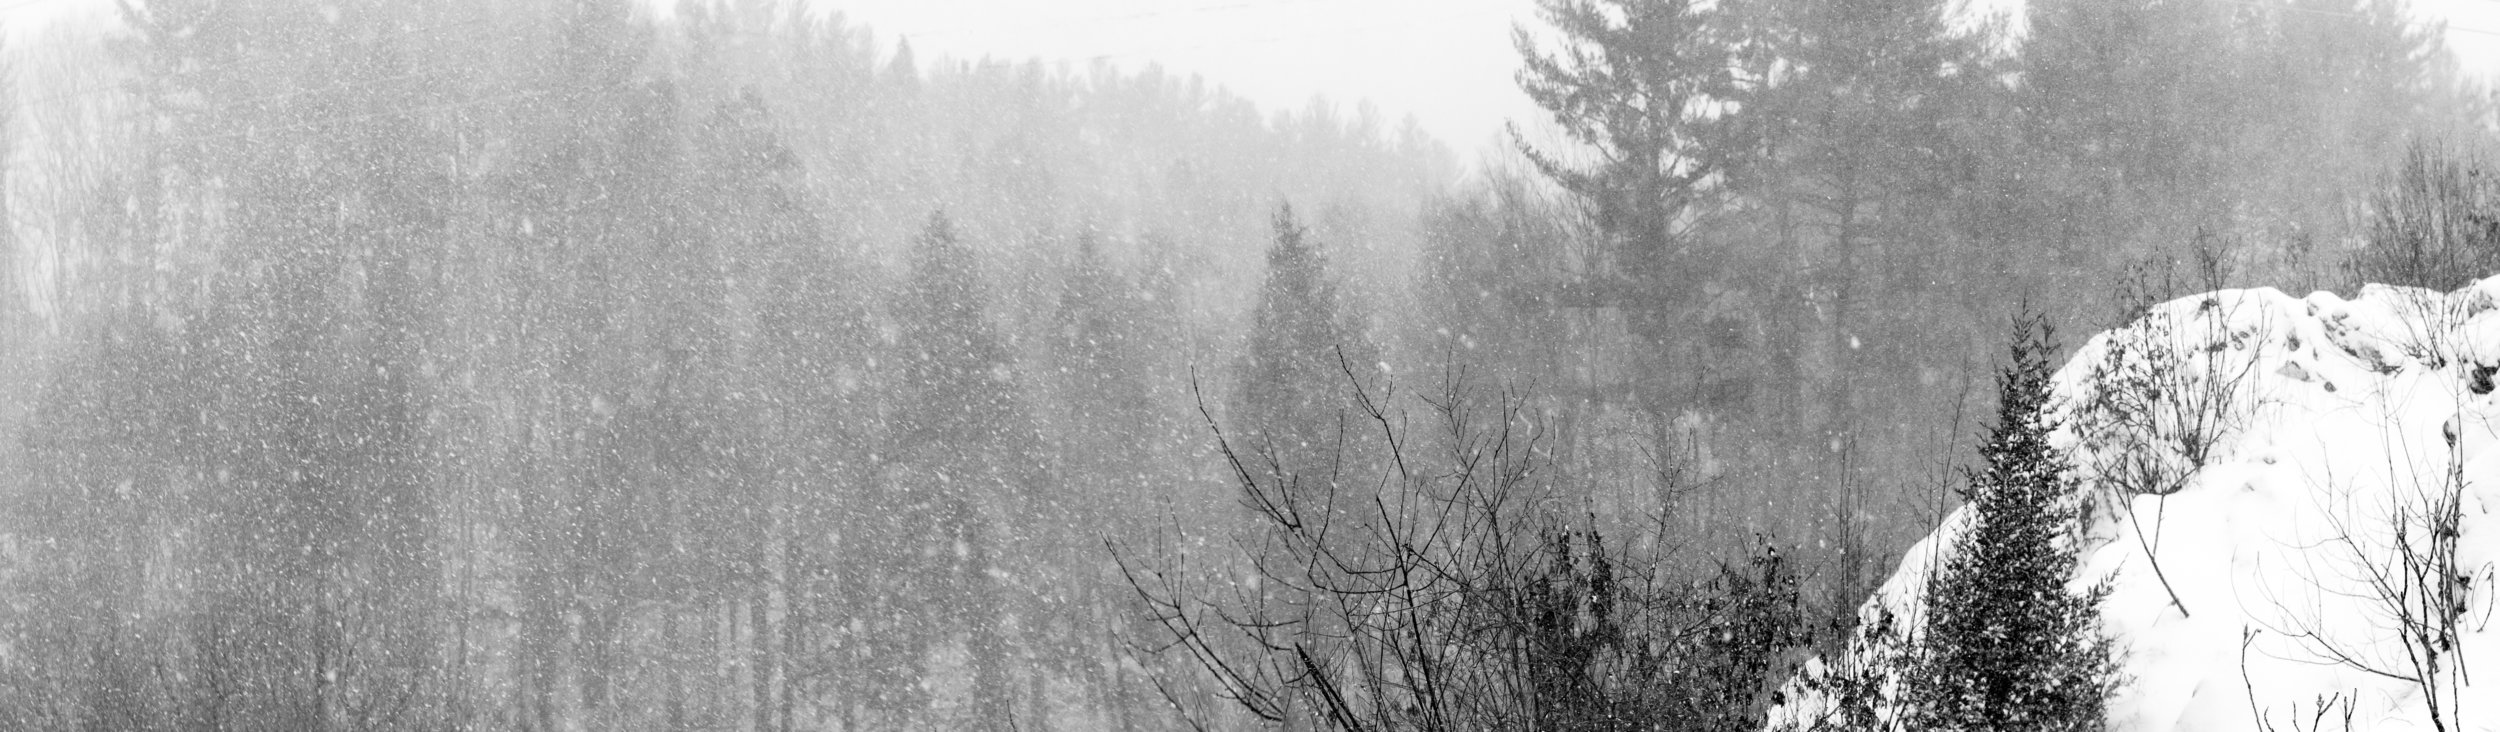 Winter Snow Shaker Glen-1.jpg